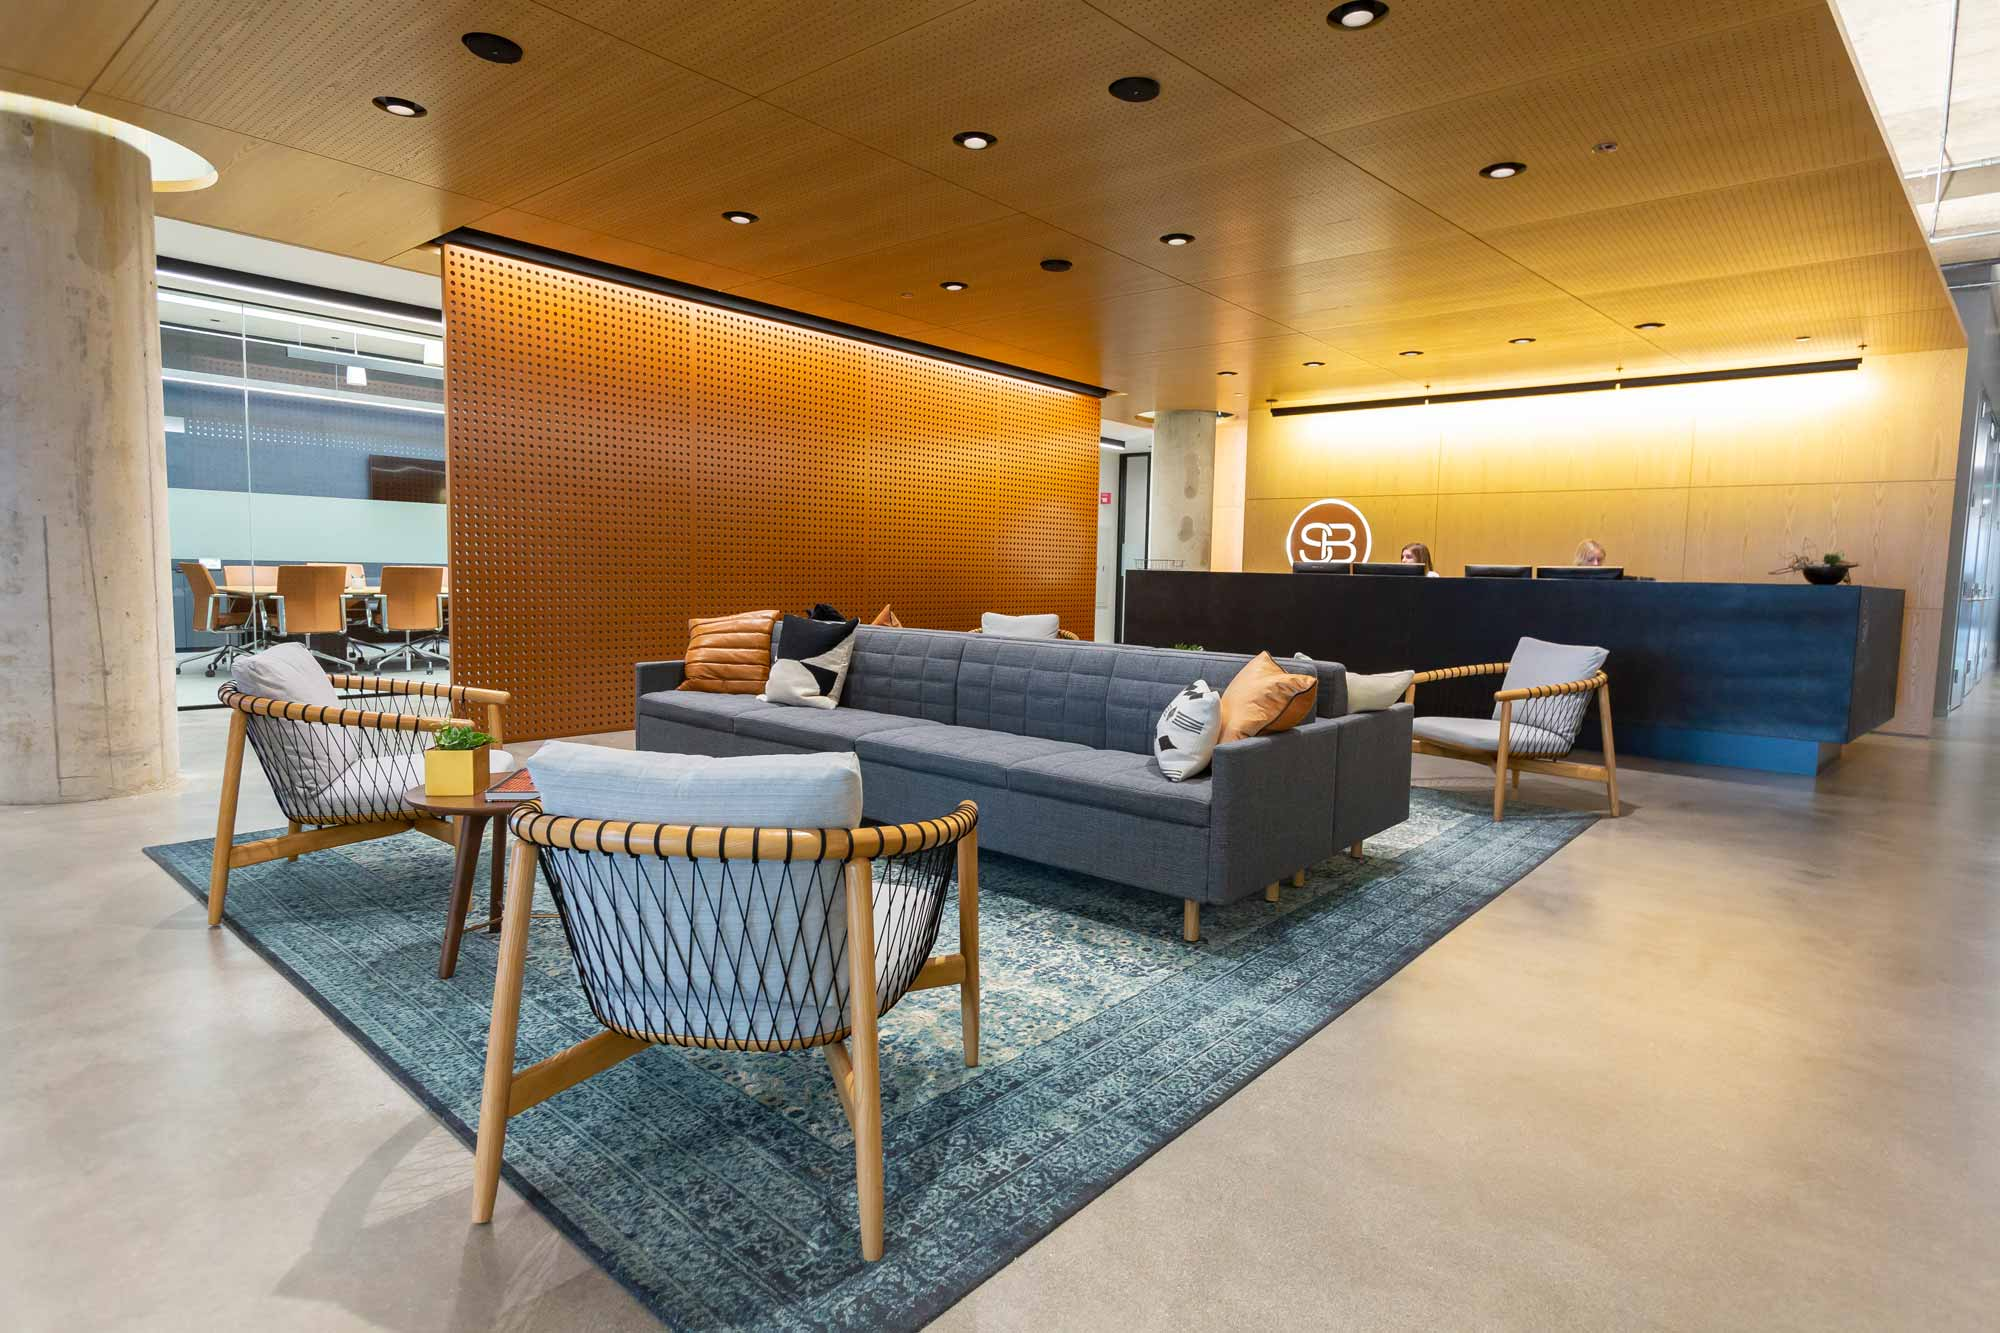 2018 Chicago S Coolest Offices Crain S Chicago Business